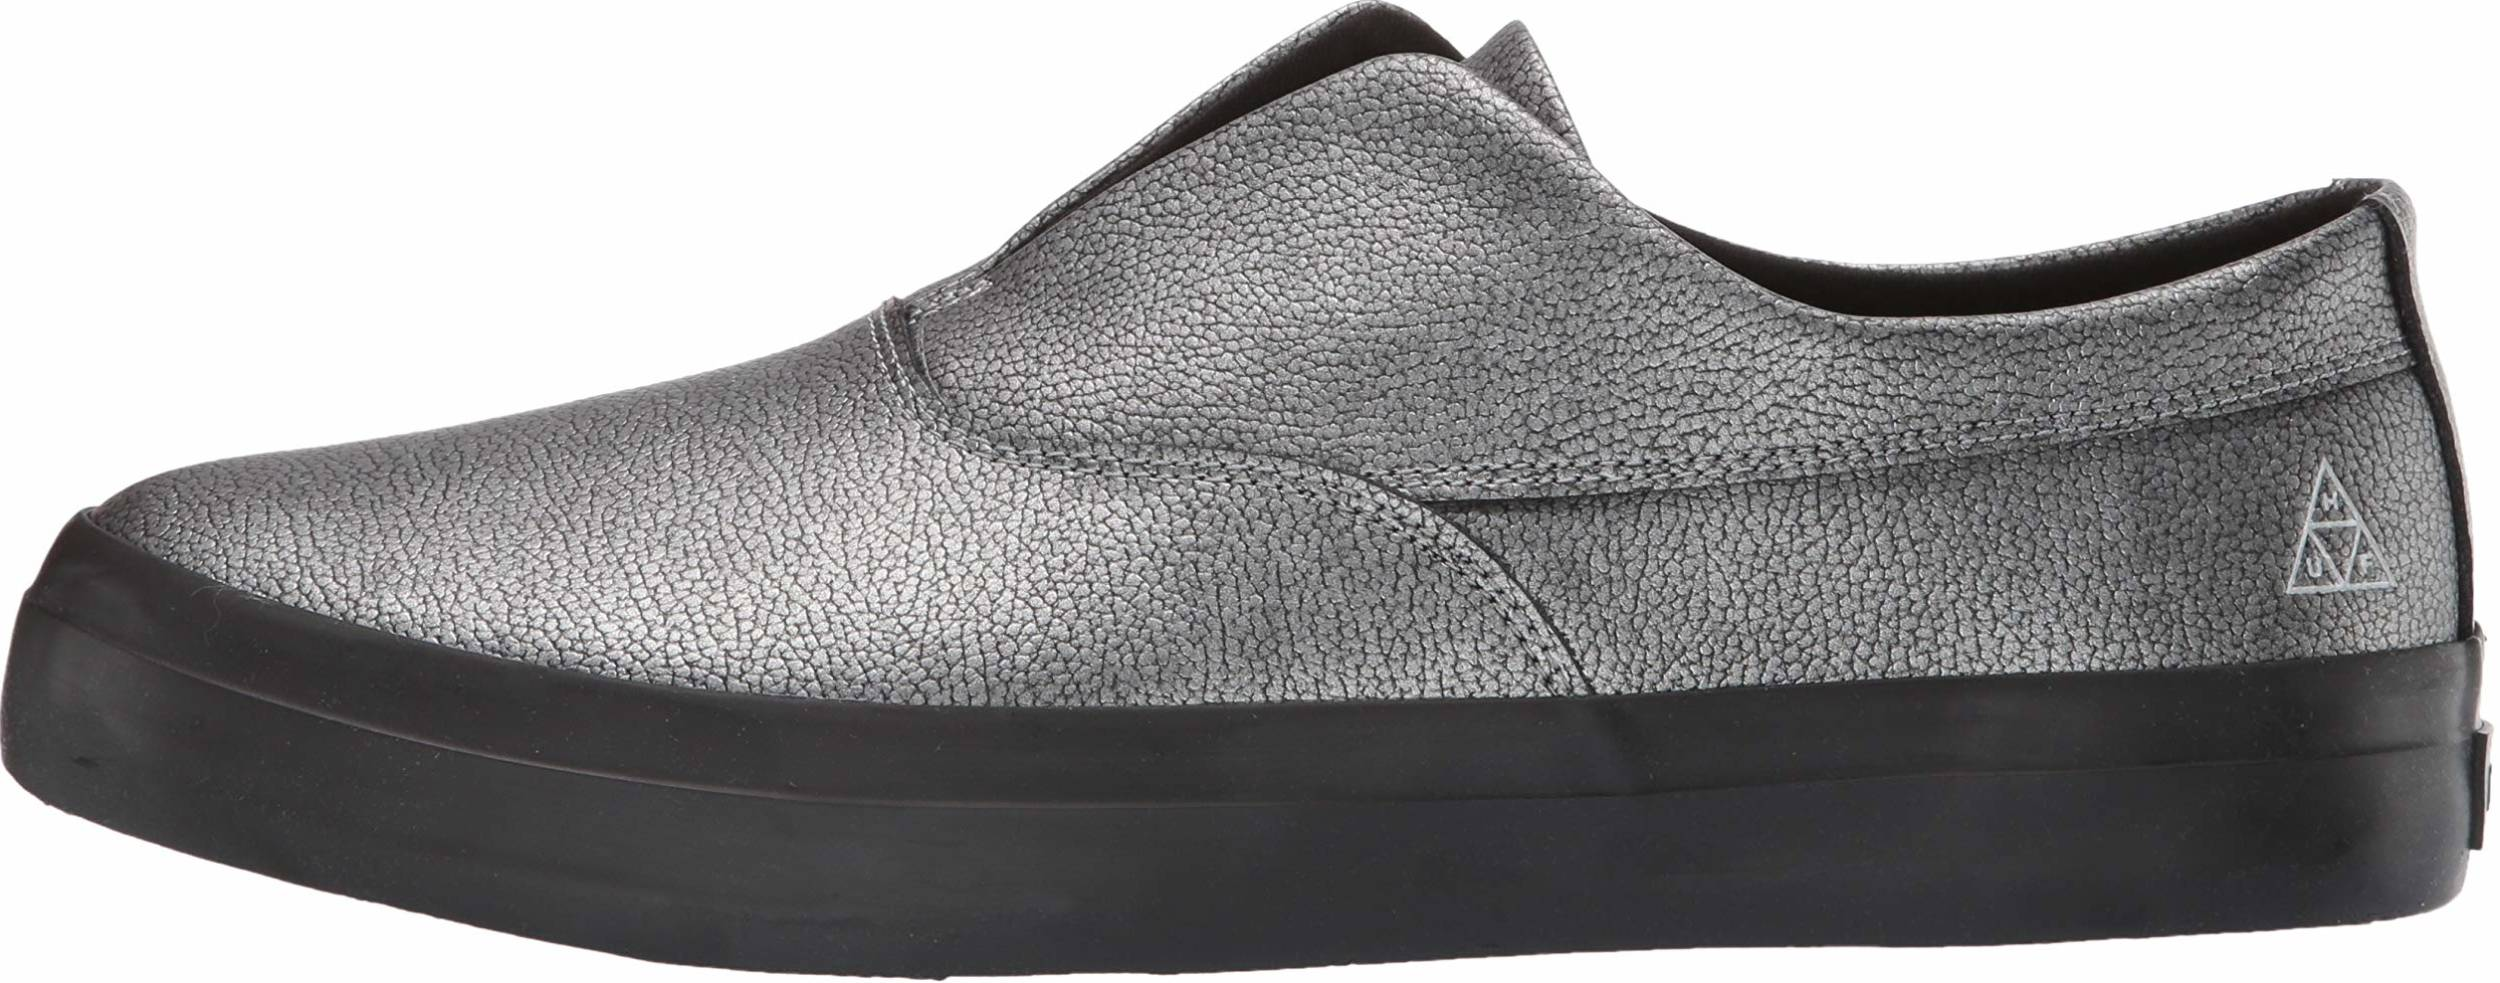 Only $48 + Review of HUF Dylan Slip-On